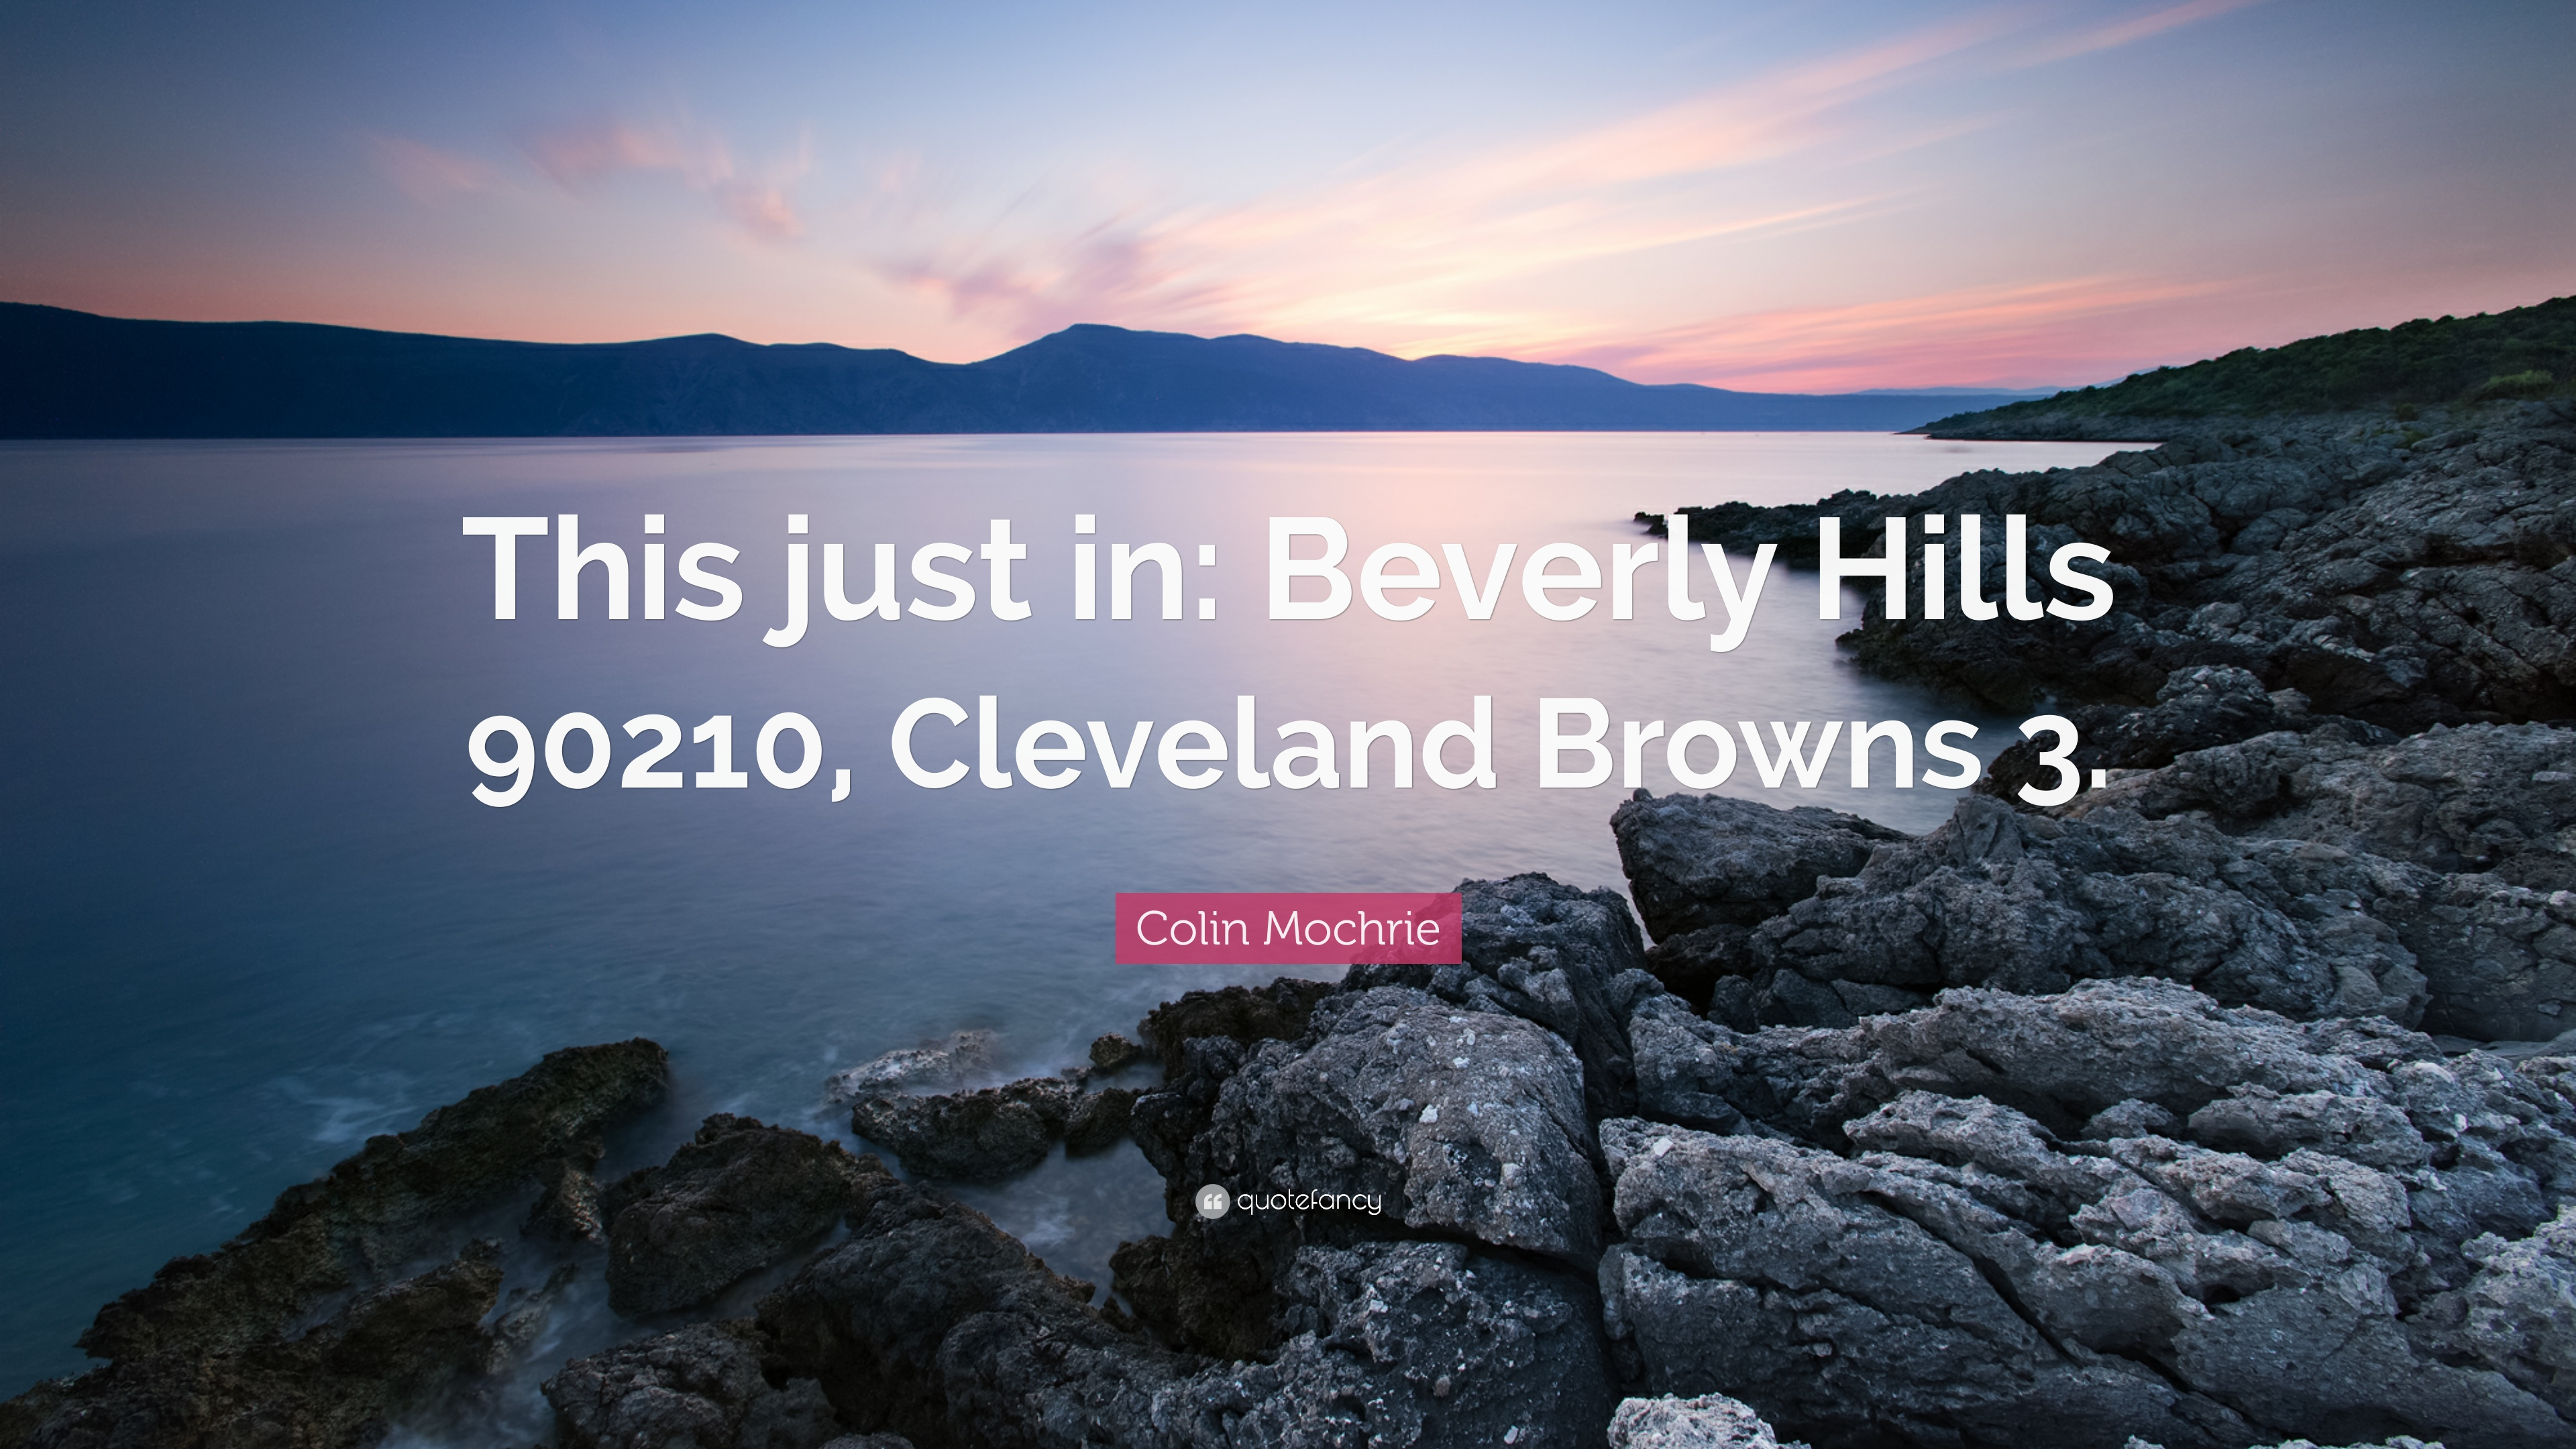 Colin mochrie quote this just in beverly hills 90210 cleveland browns 3